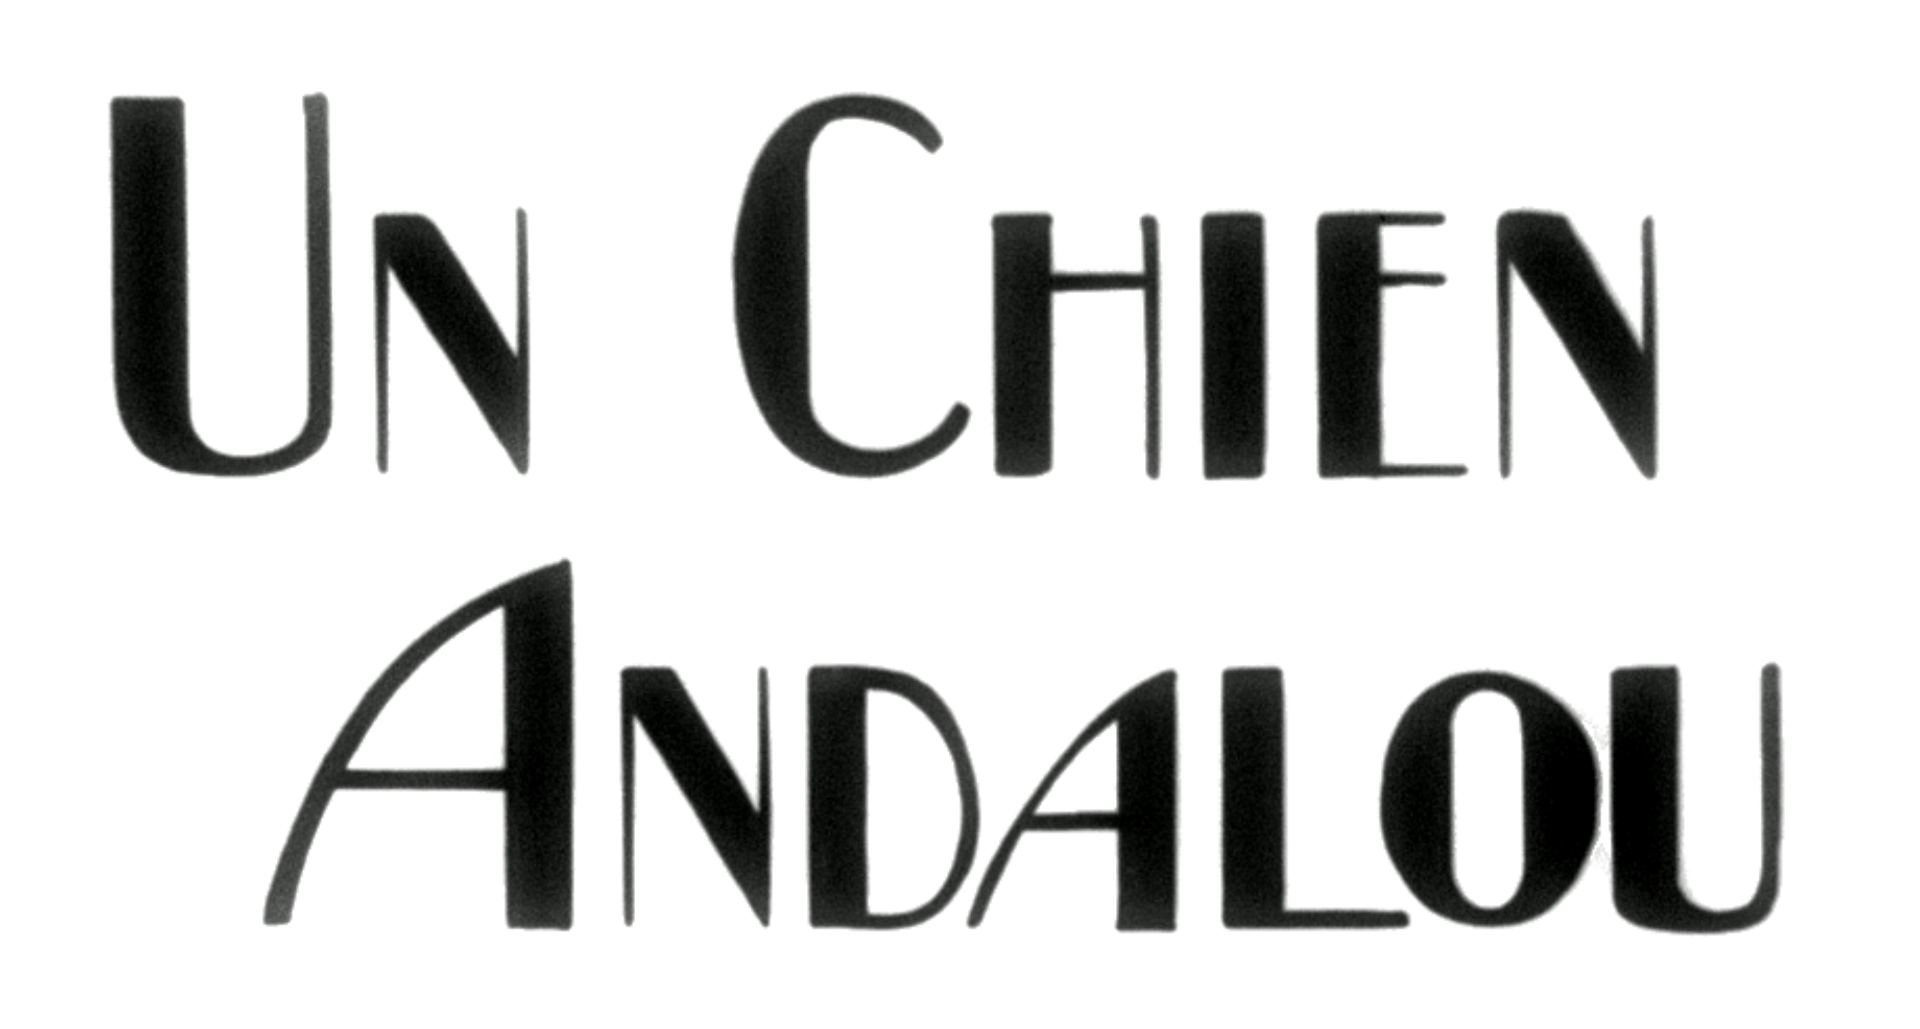 File:Un chien andalou movie horizontal black logo.png - Wikimedia Commons